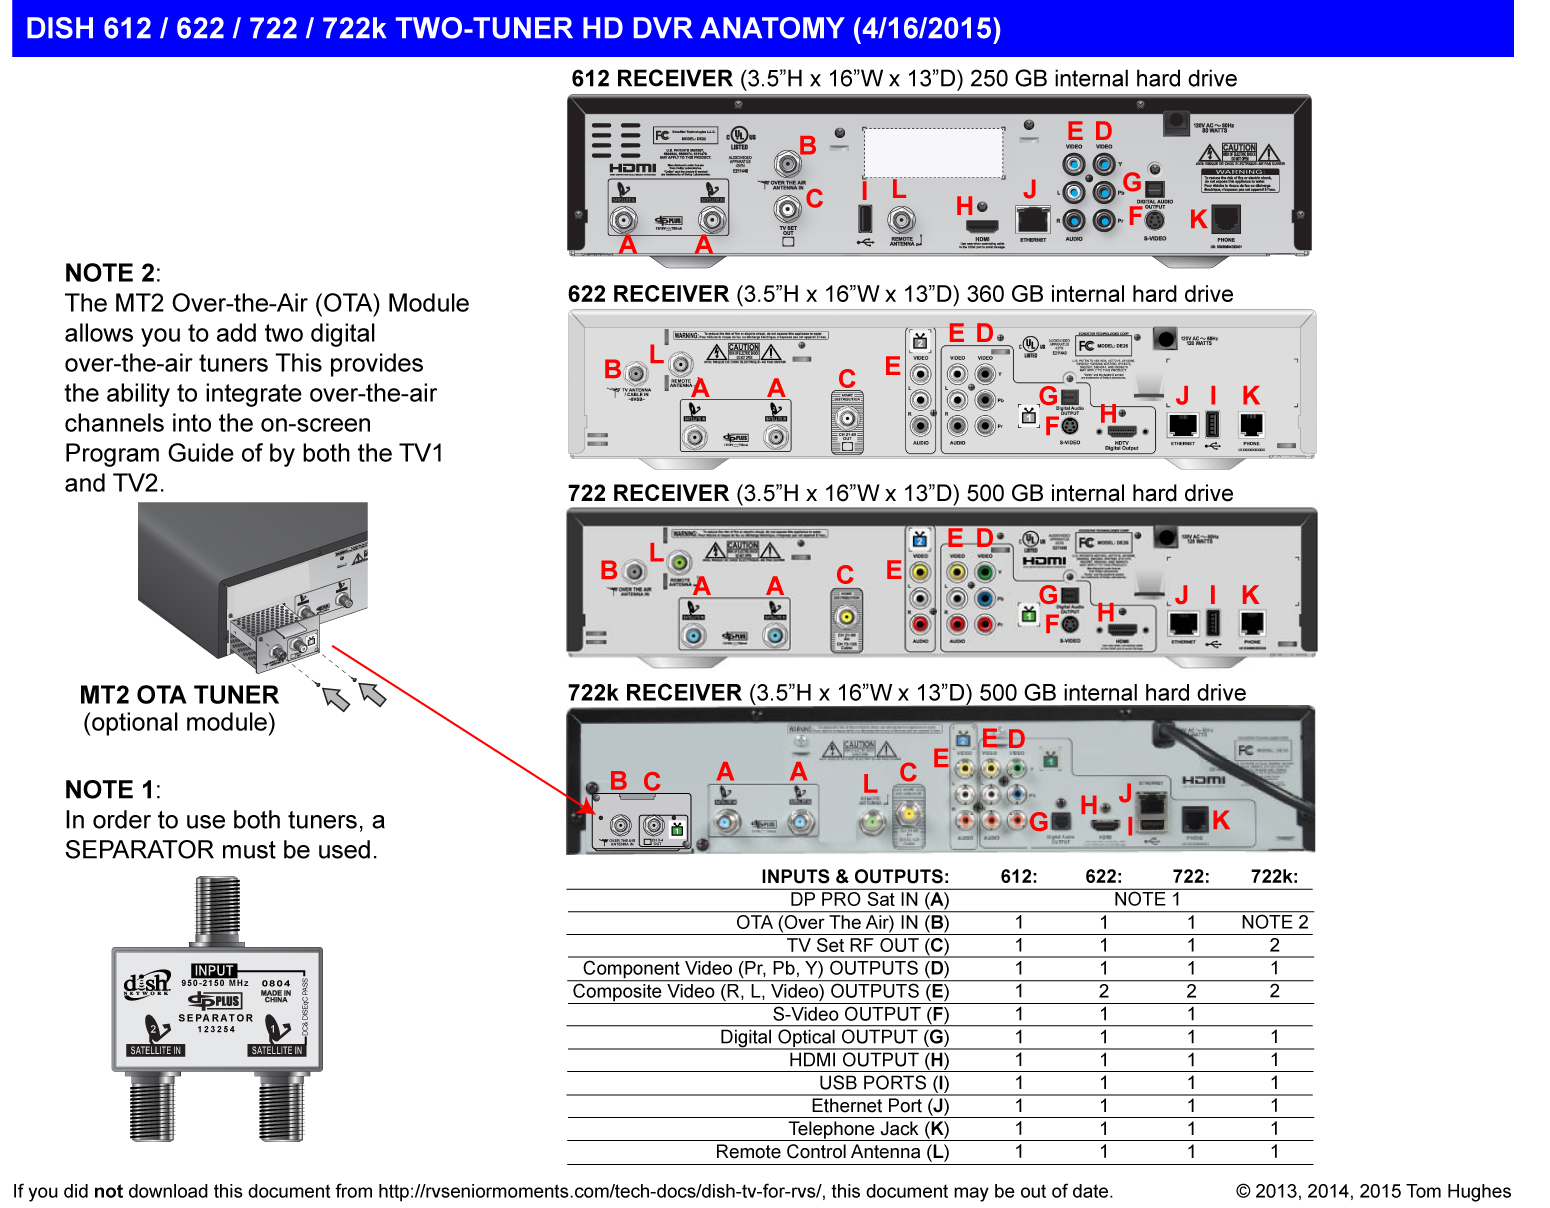 multiple receivers for satellite wiring diagram dish tv for rvs rvseniormoments  dish tv for rvs rvseniormoments